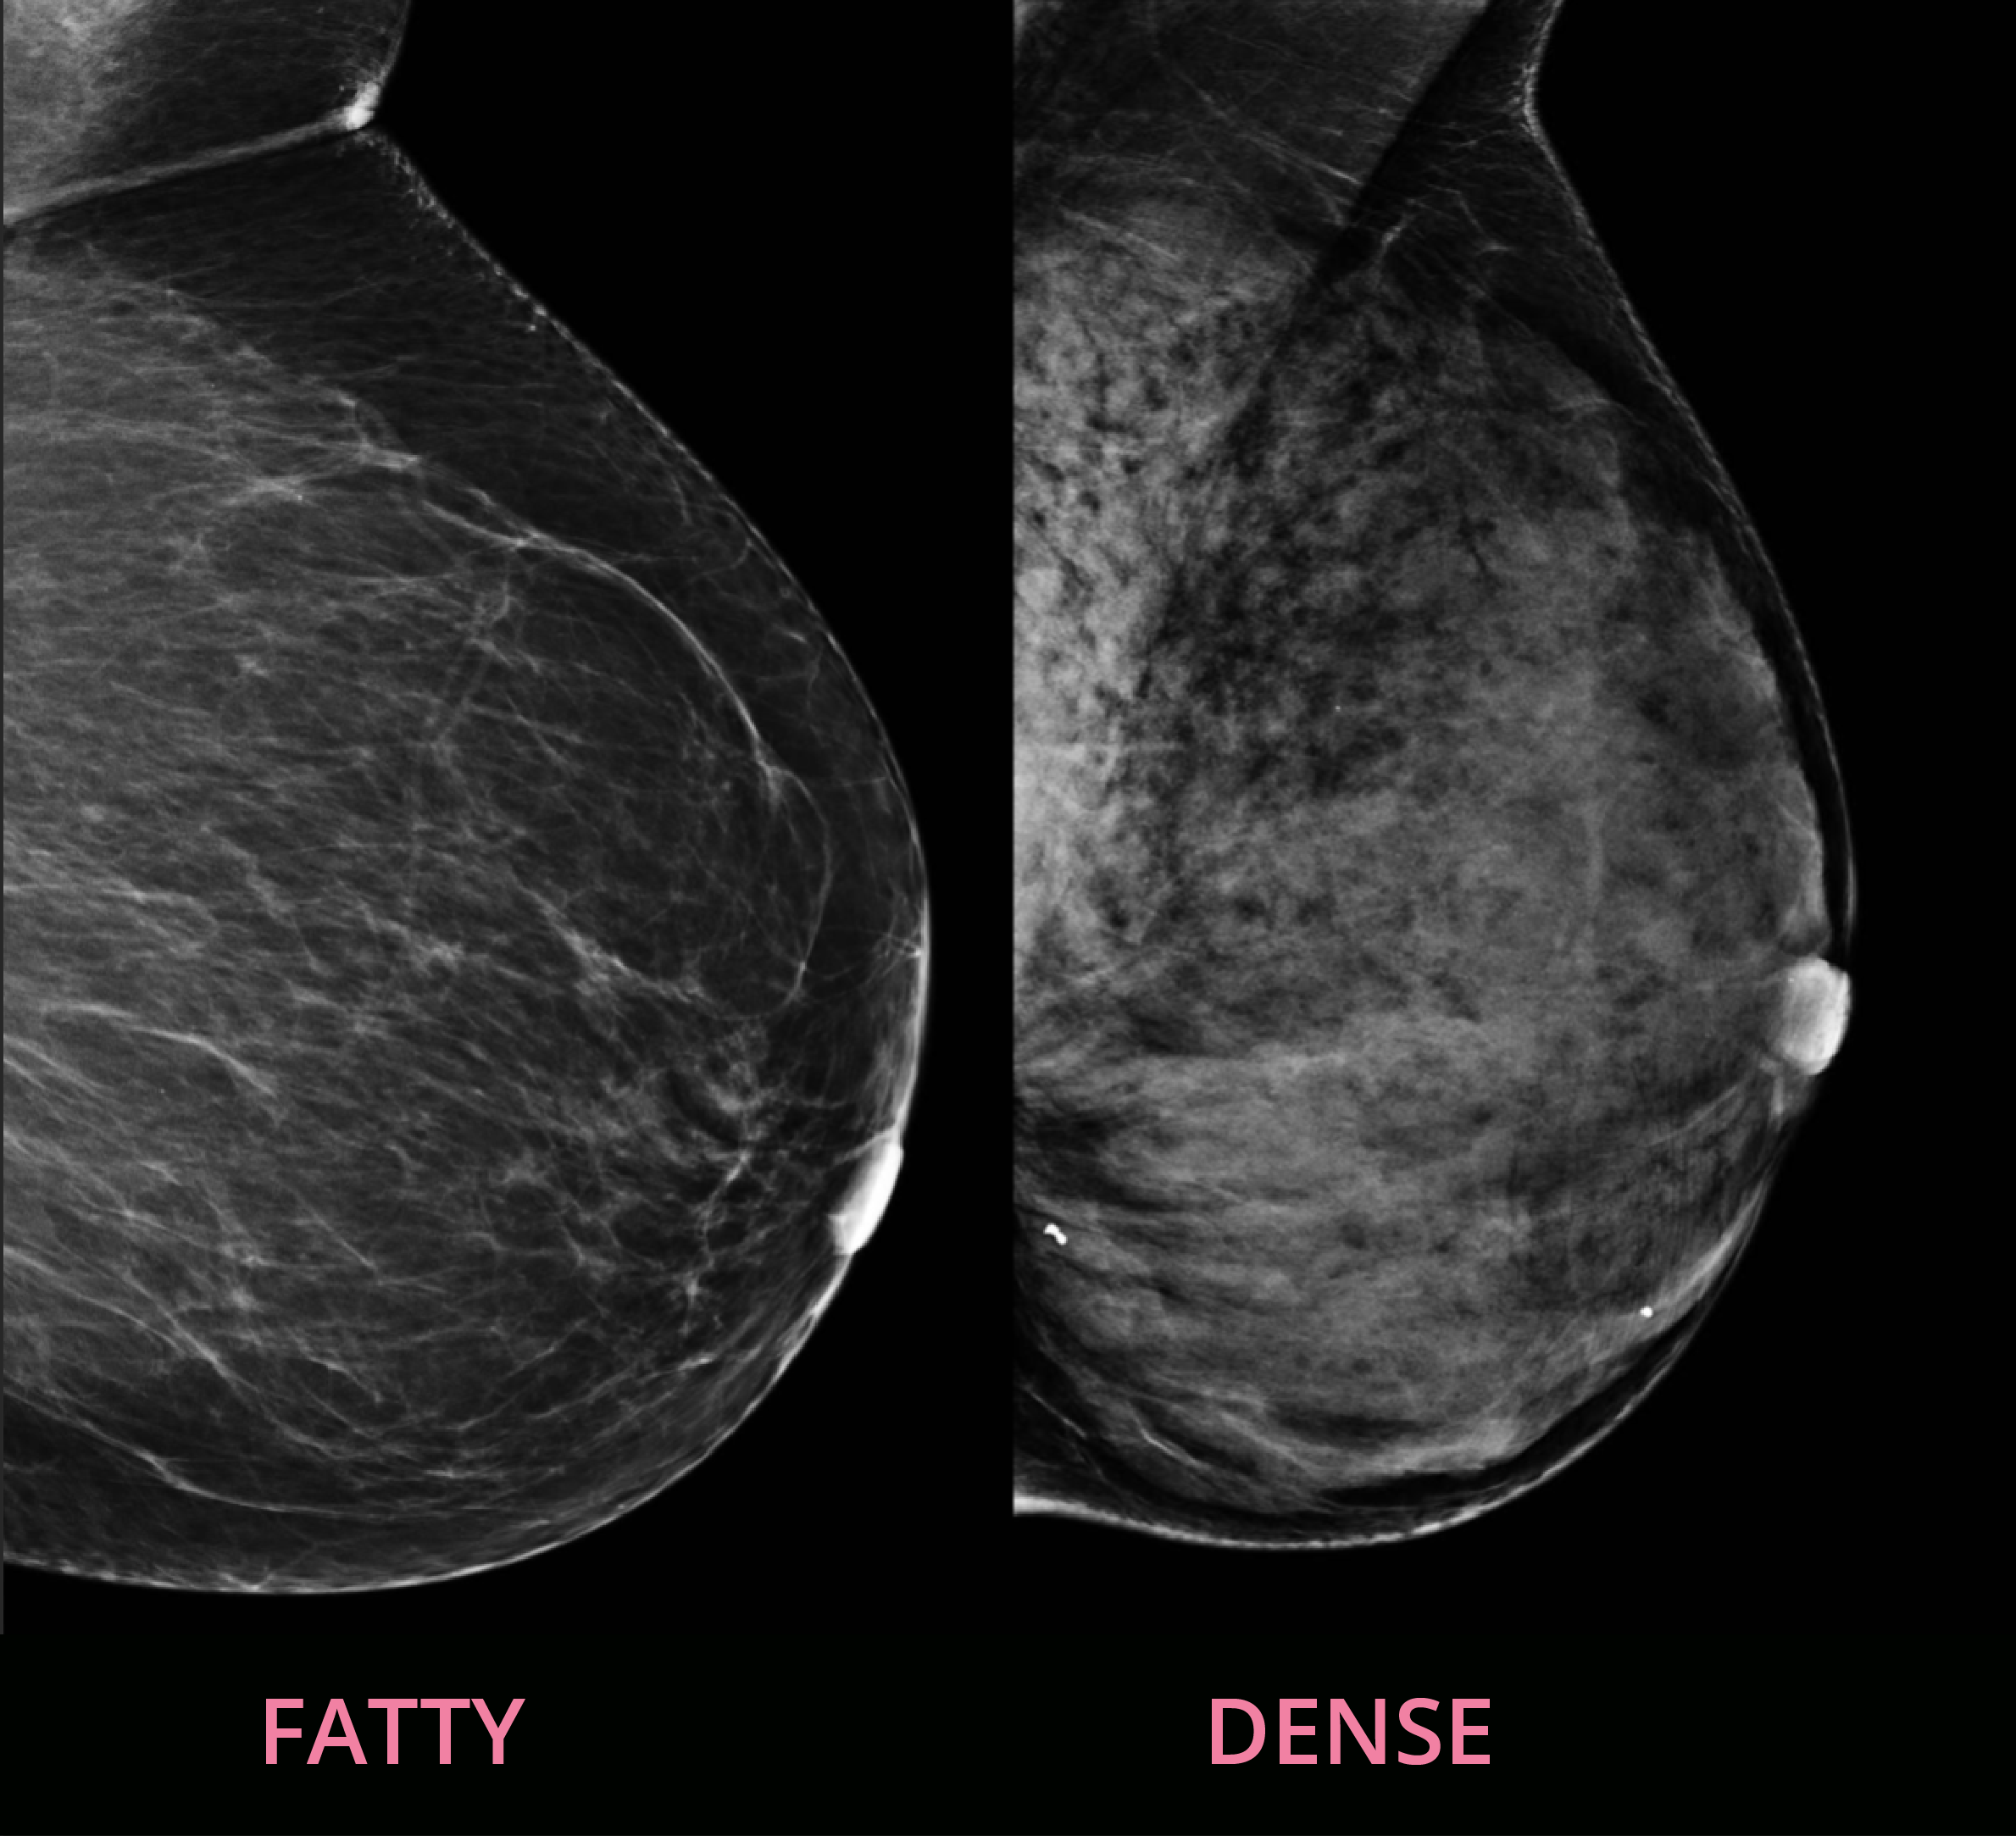 Dense breasts verus fatty breasts